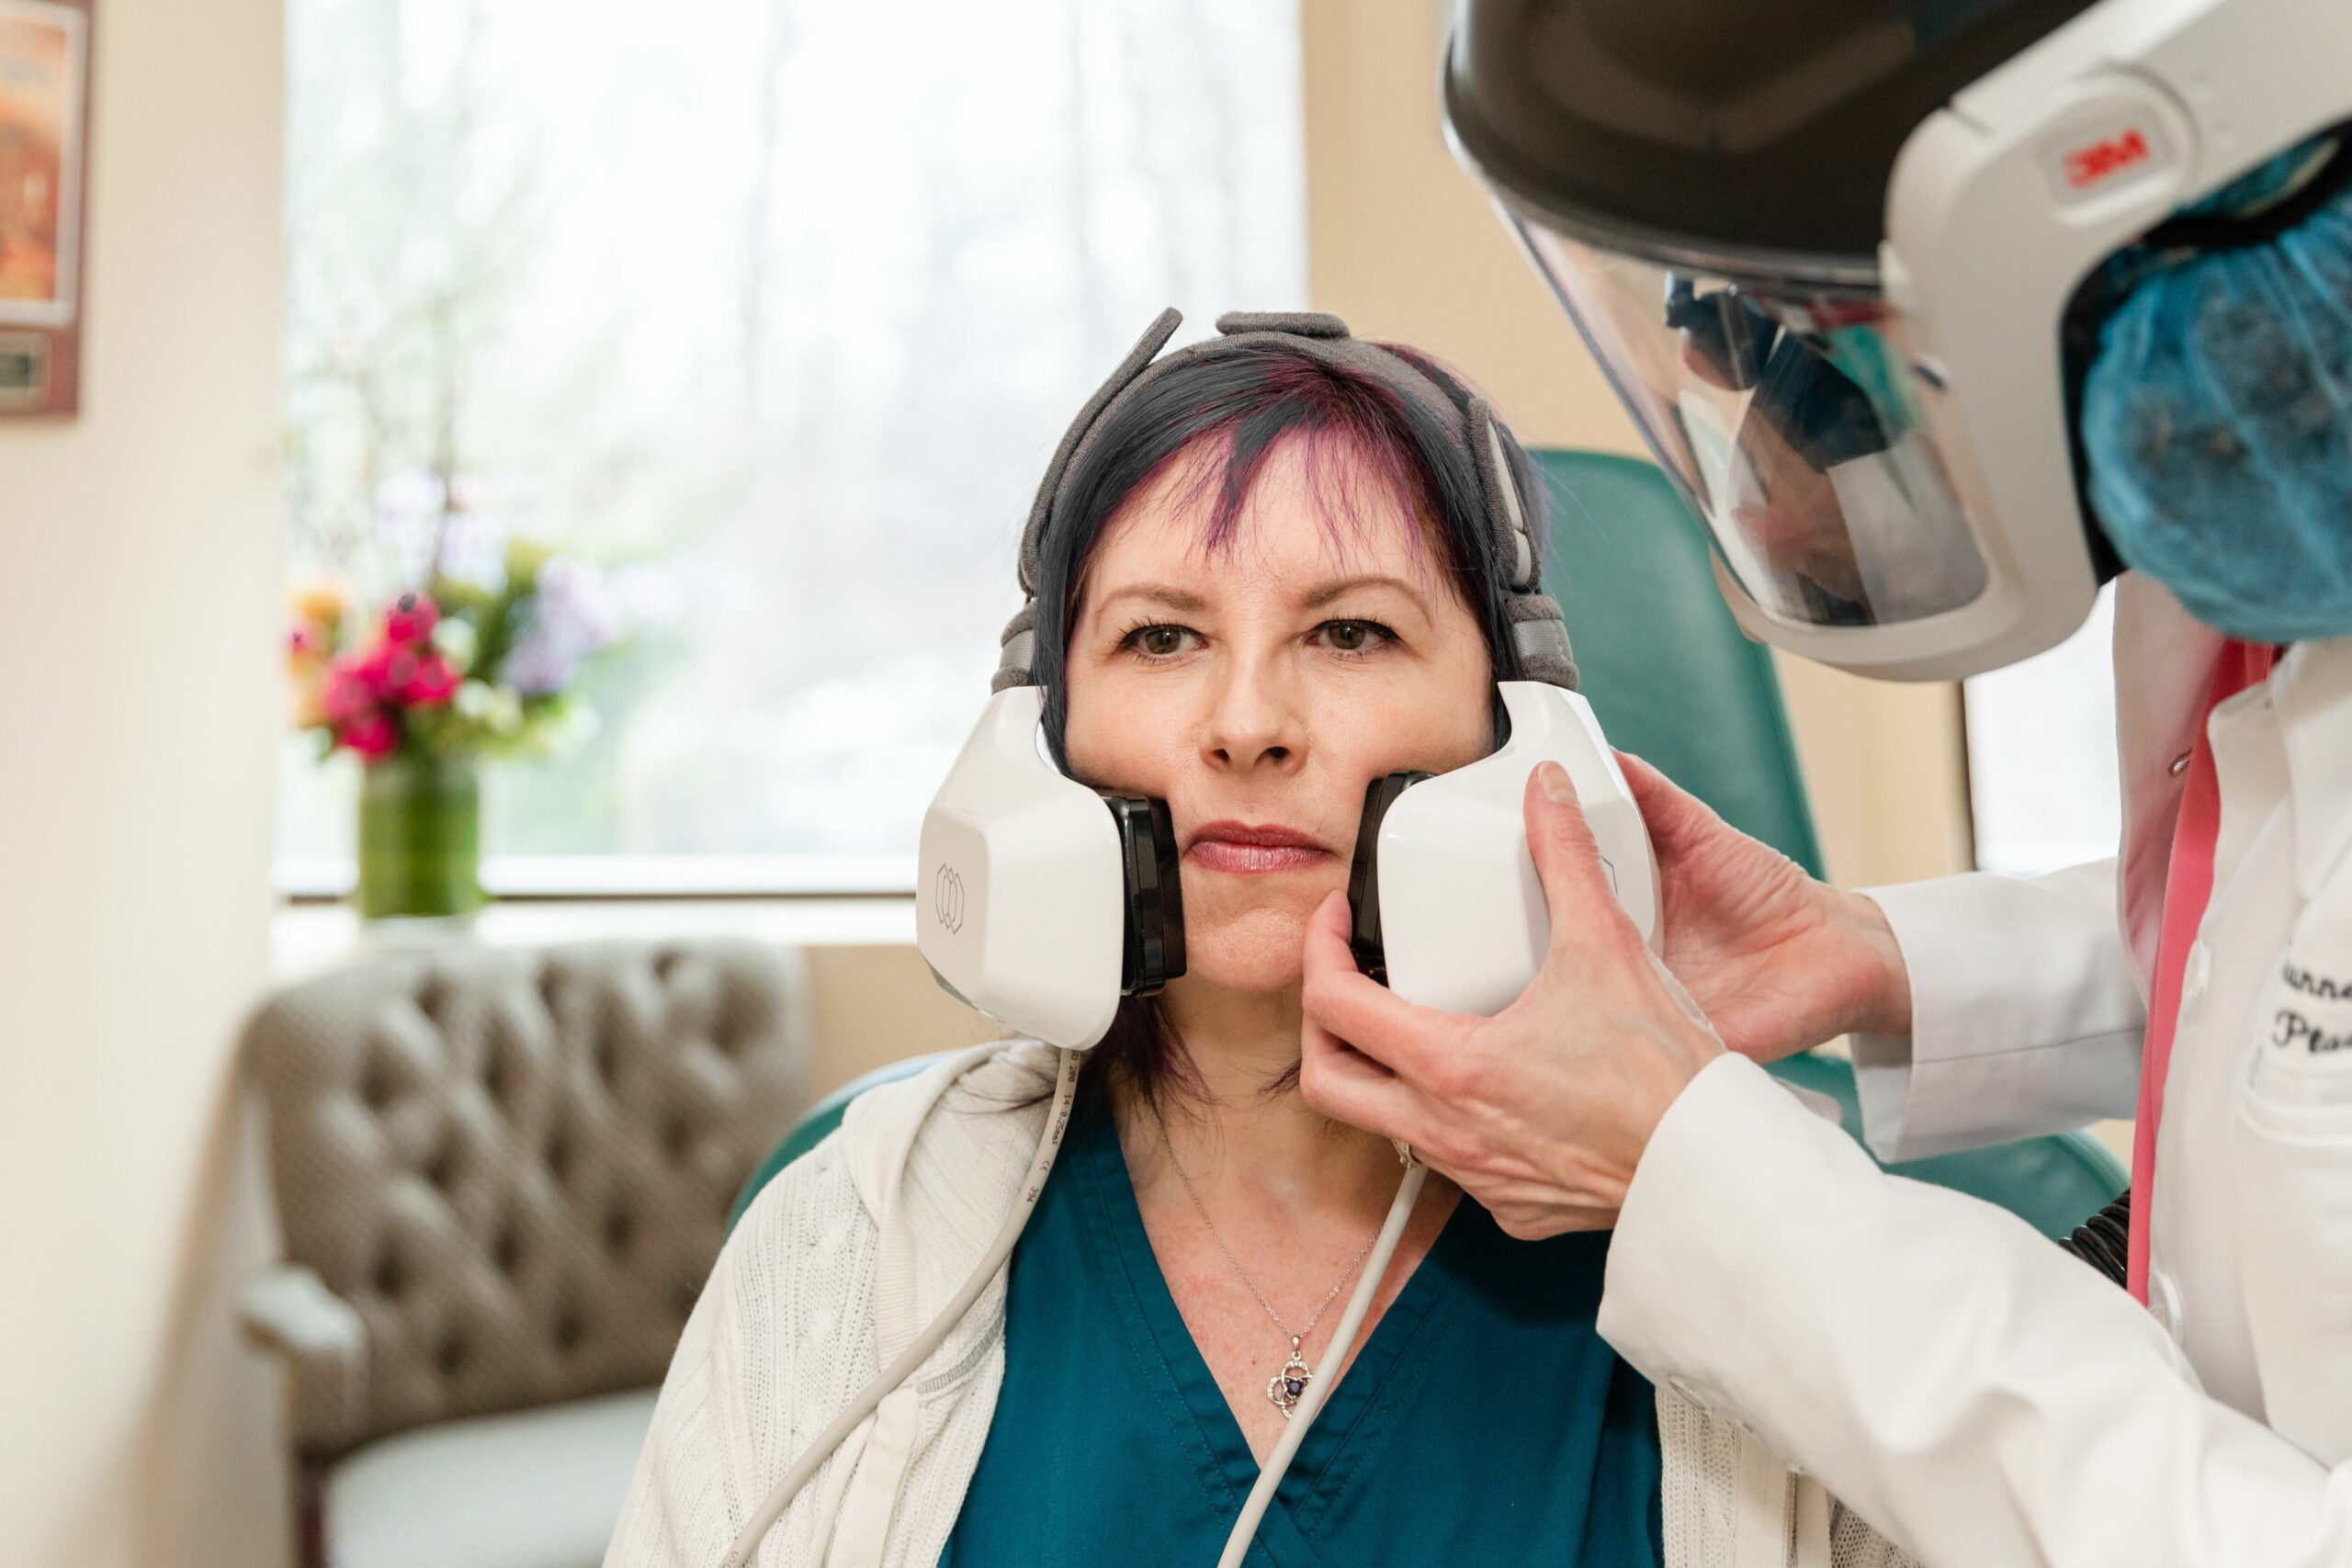 Patient receiving a non-surgical neck lift with Evoke facial remodeling in Princeton, NJ